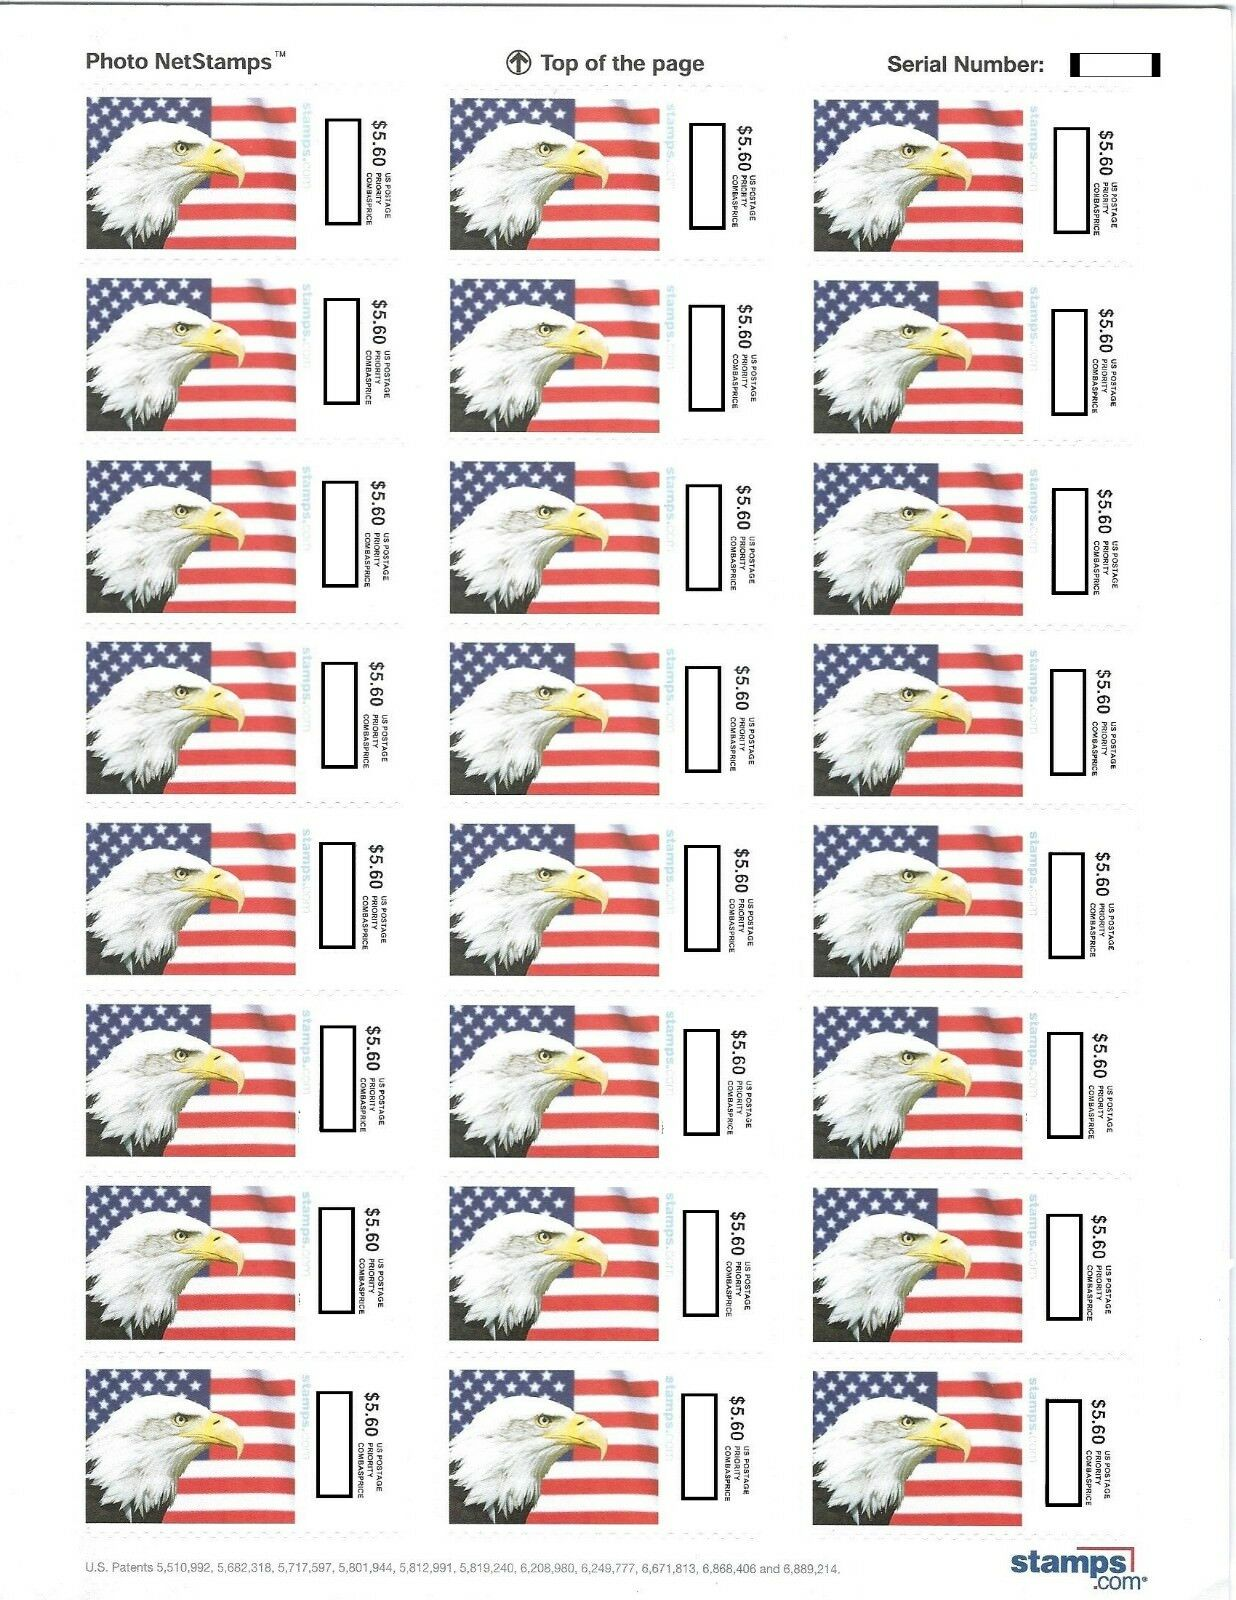 USPS $5.60 Priority Stamps Postage 24/sheet Face Value $134.40 Ships Priority!!!